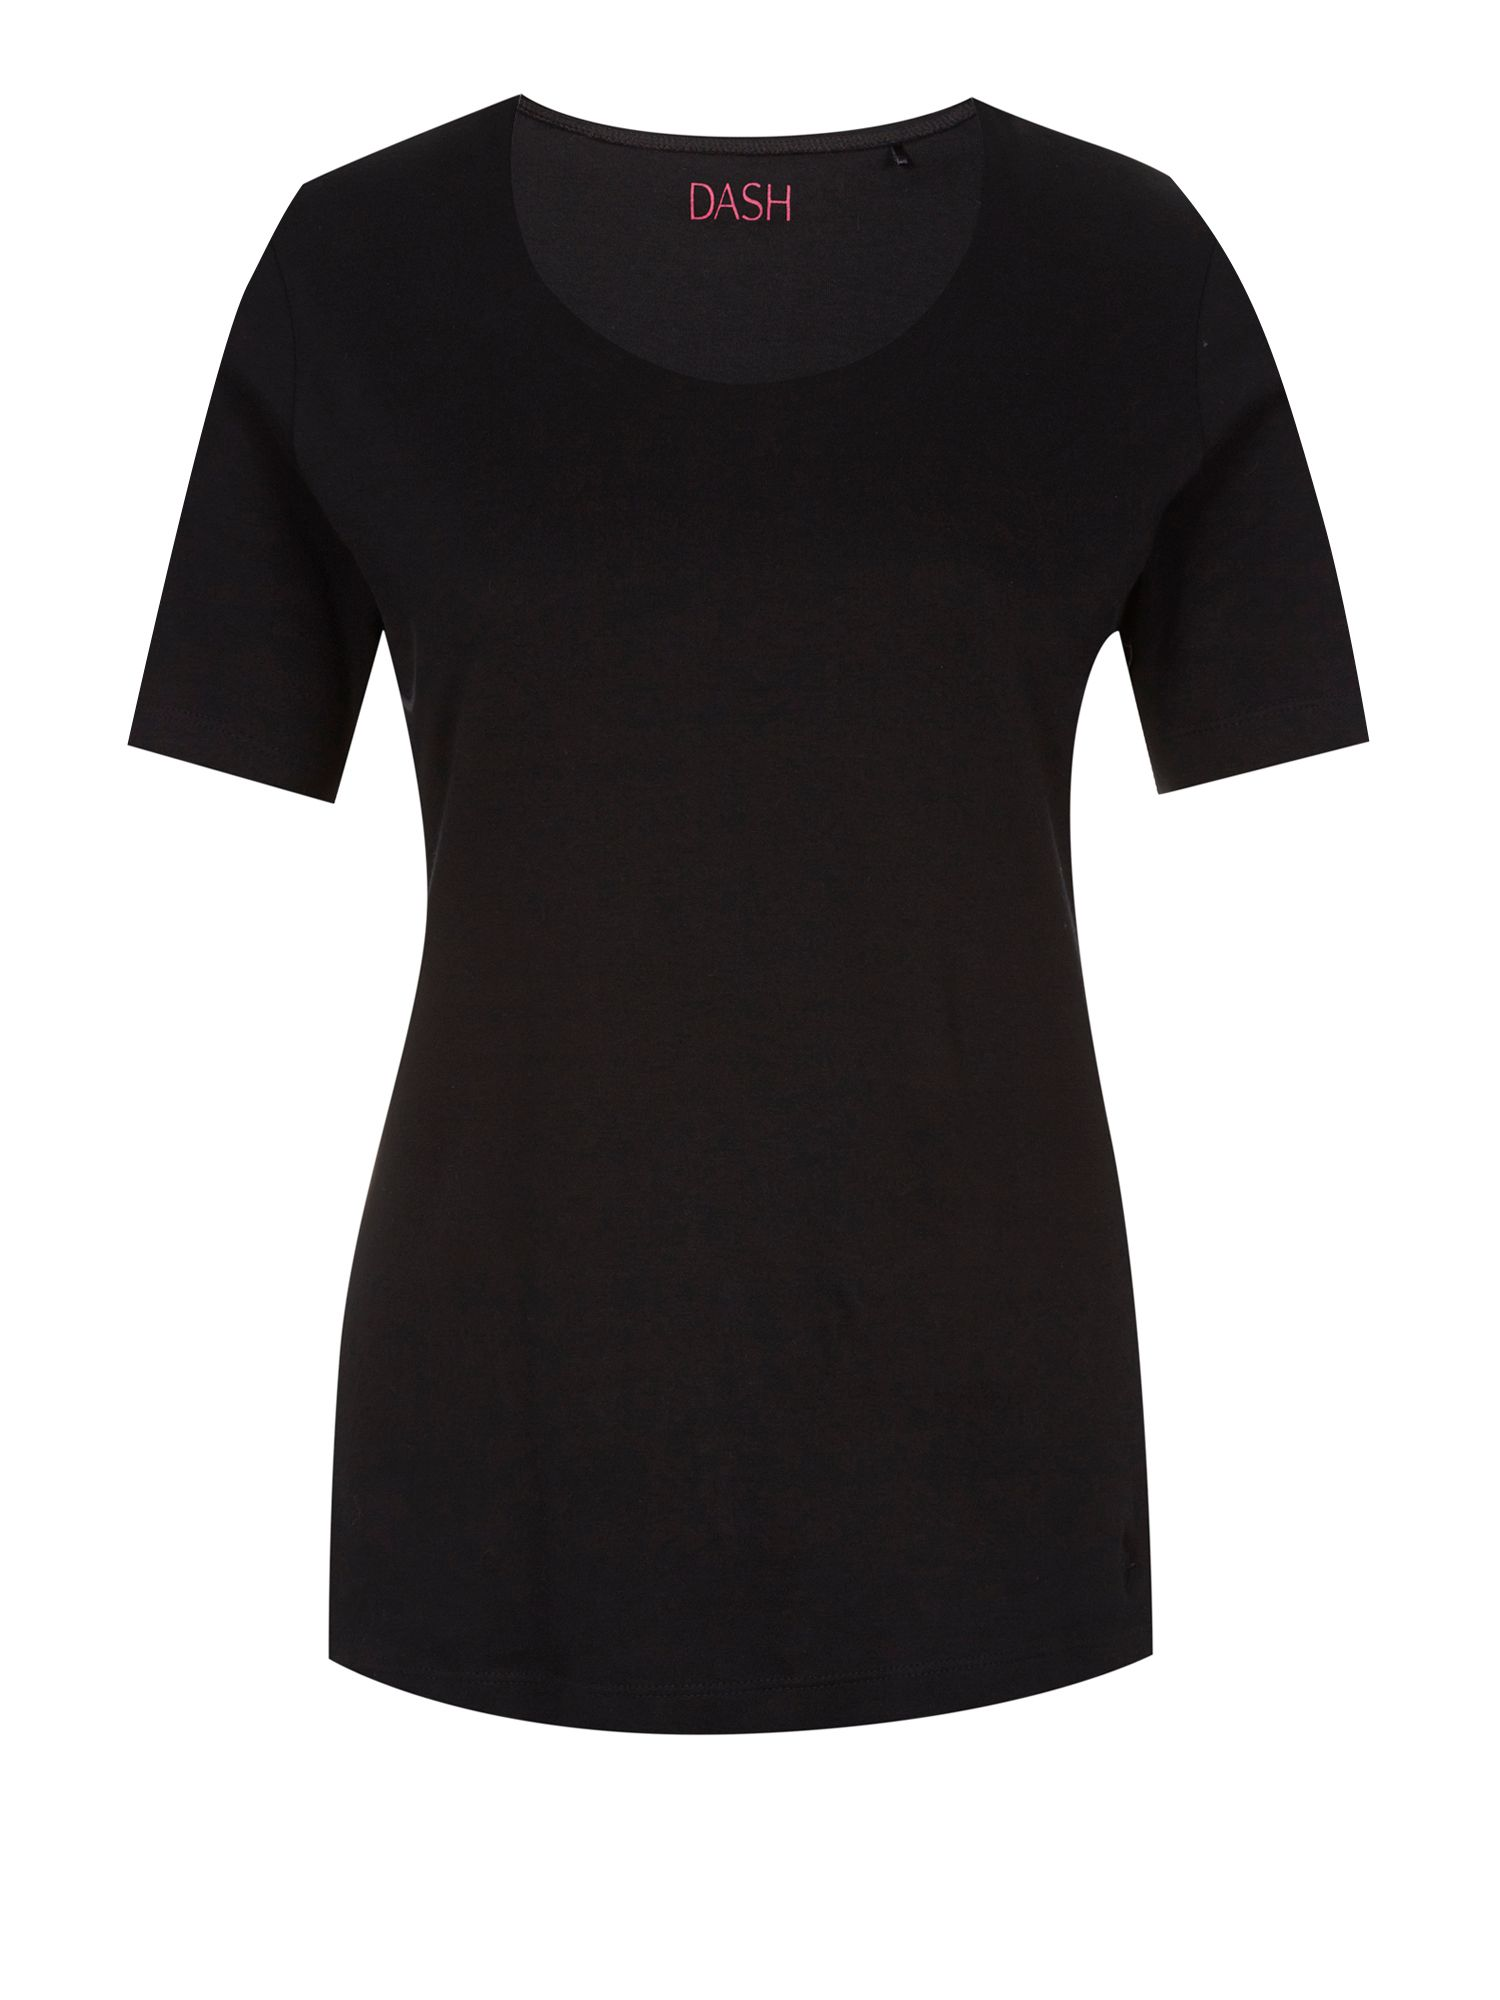 Dash Essential Black T-shirt